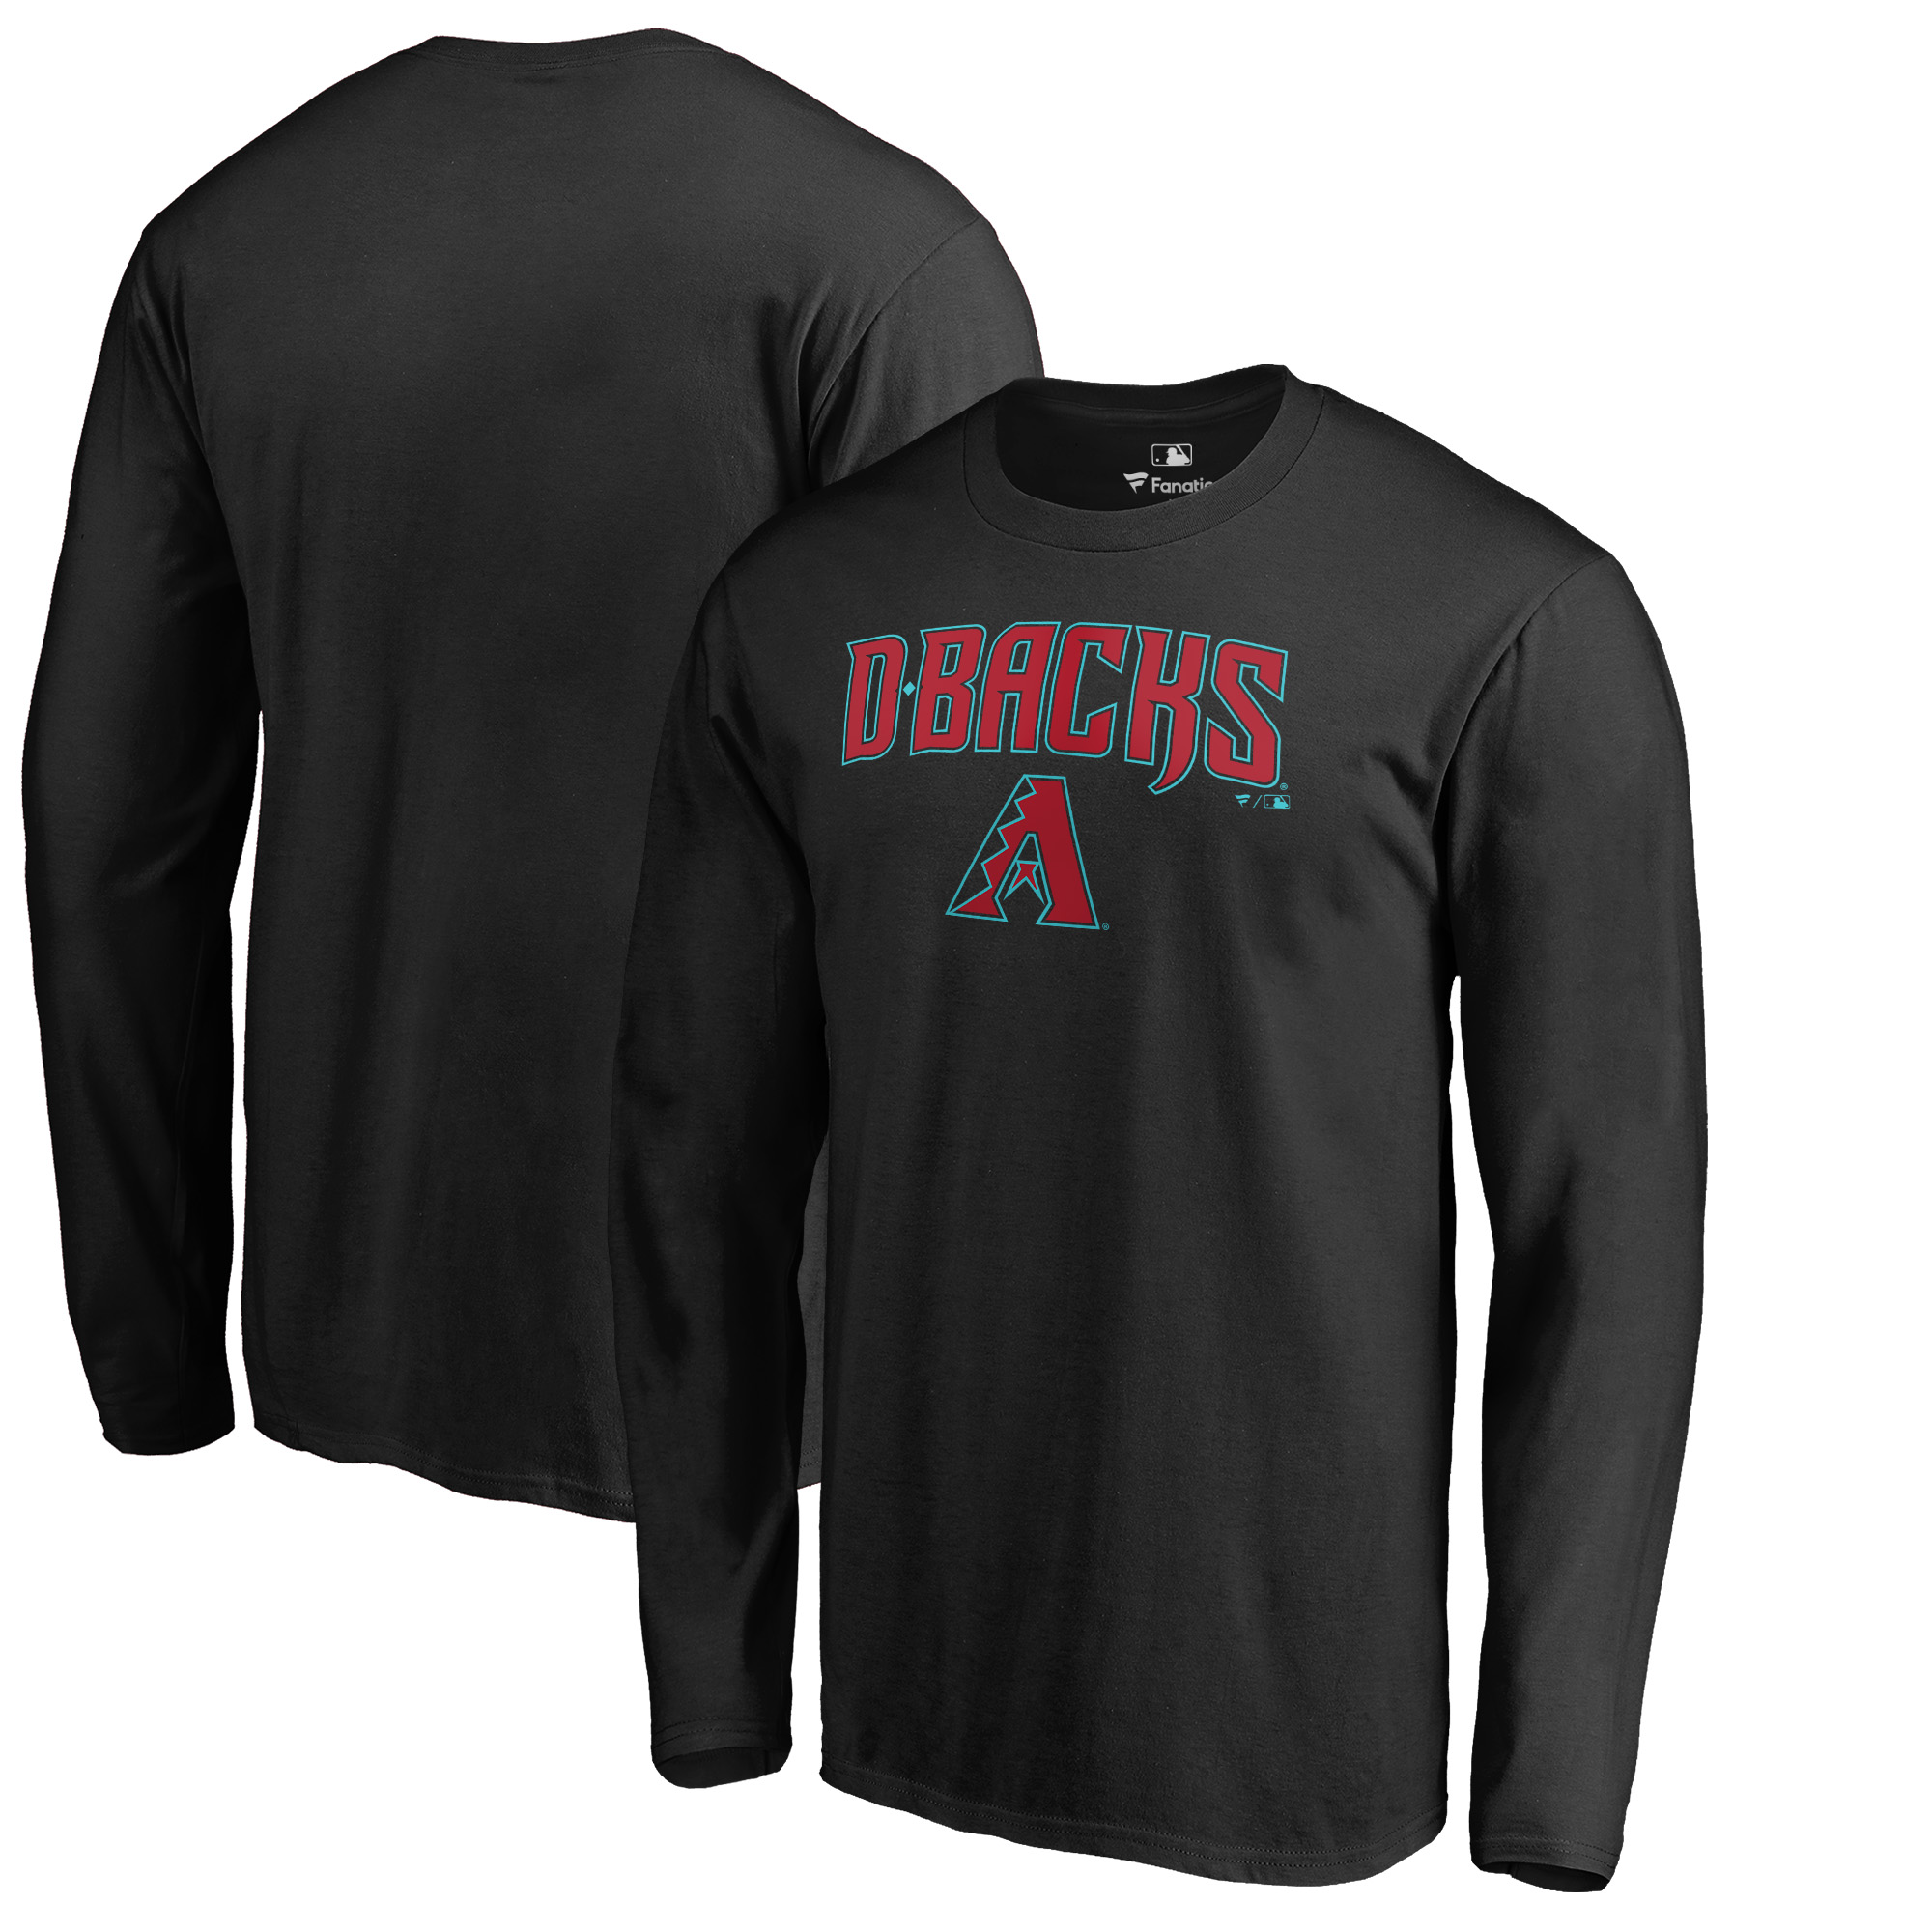 Arizona Diamondbacks Fanatics Branded Big & Tall Team Lockup Long Sleeve T-Shirt - Black